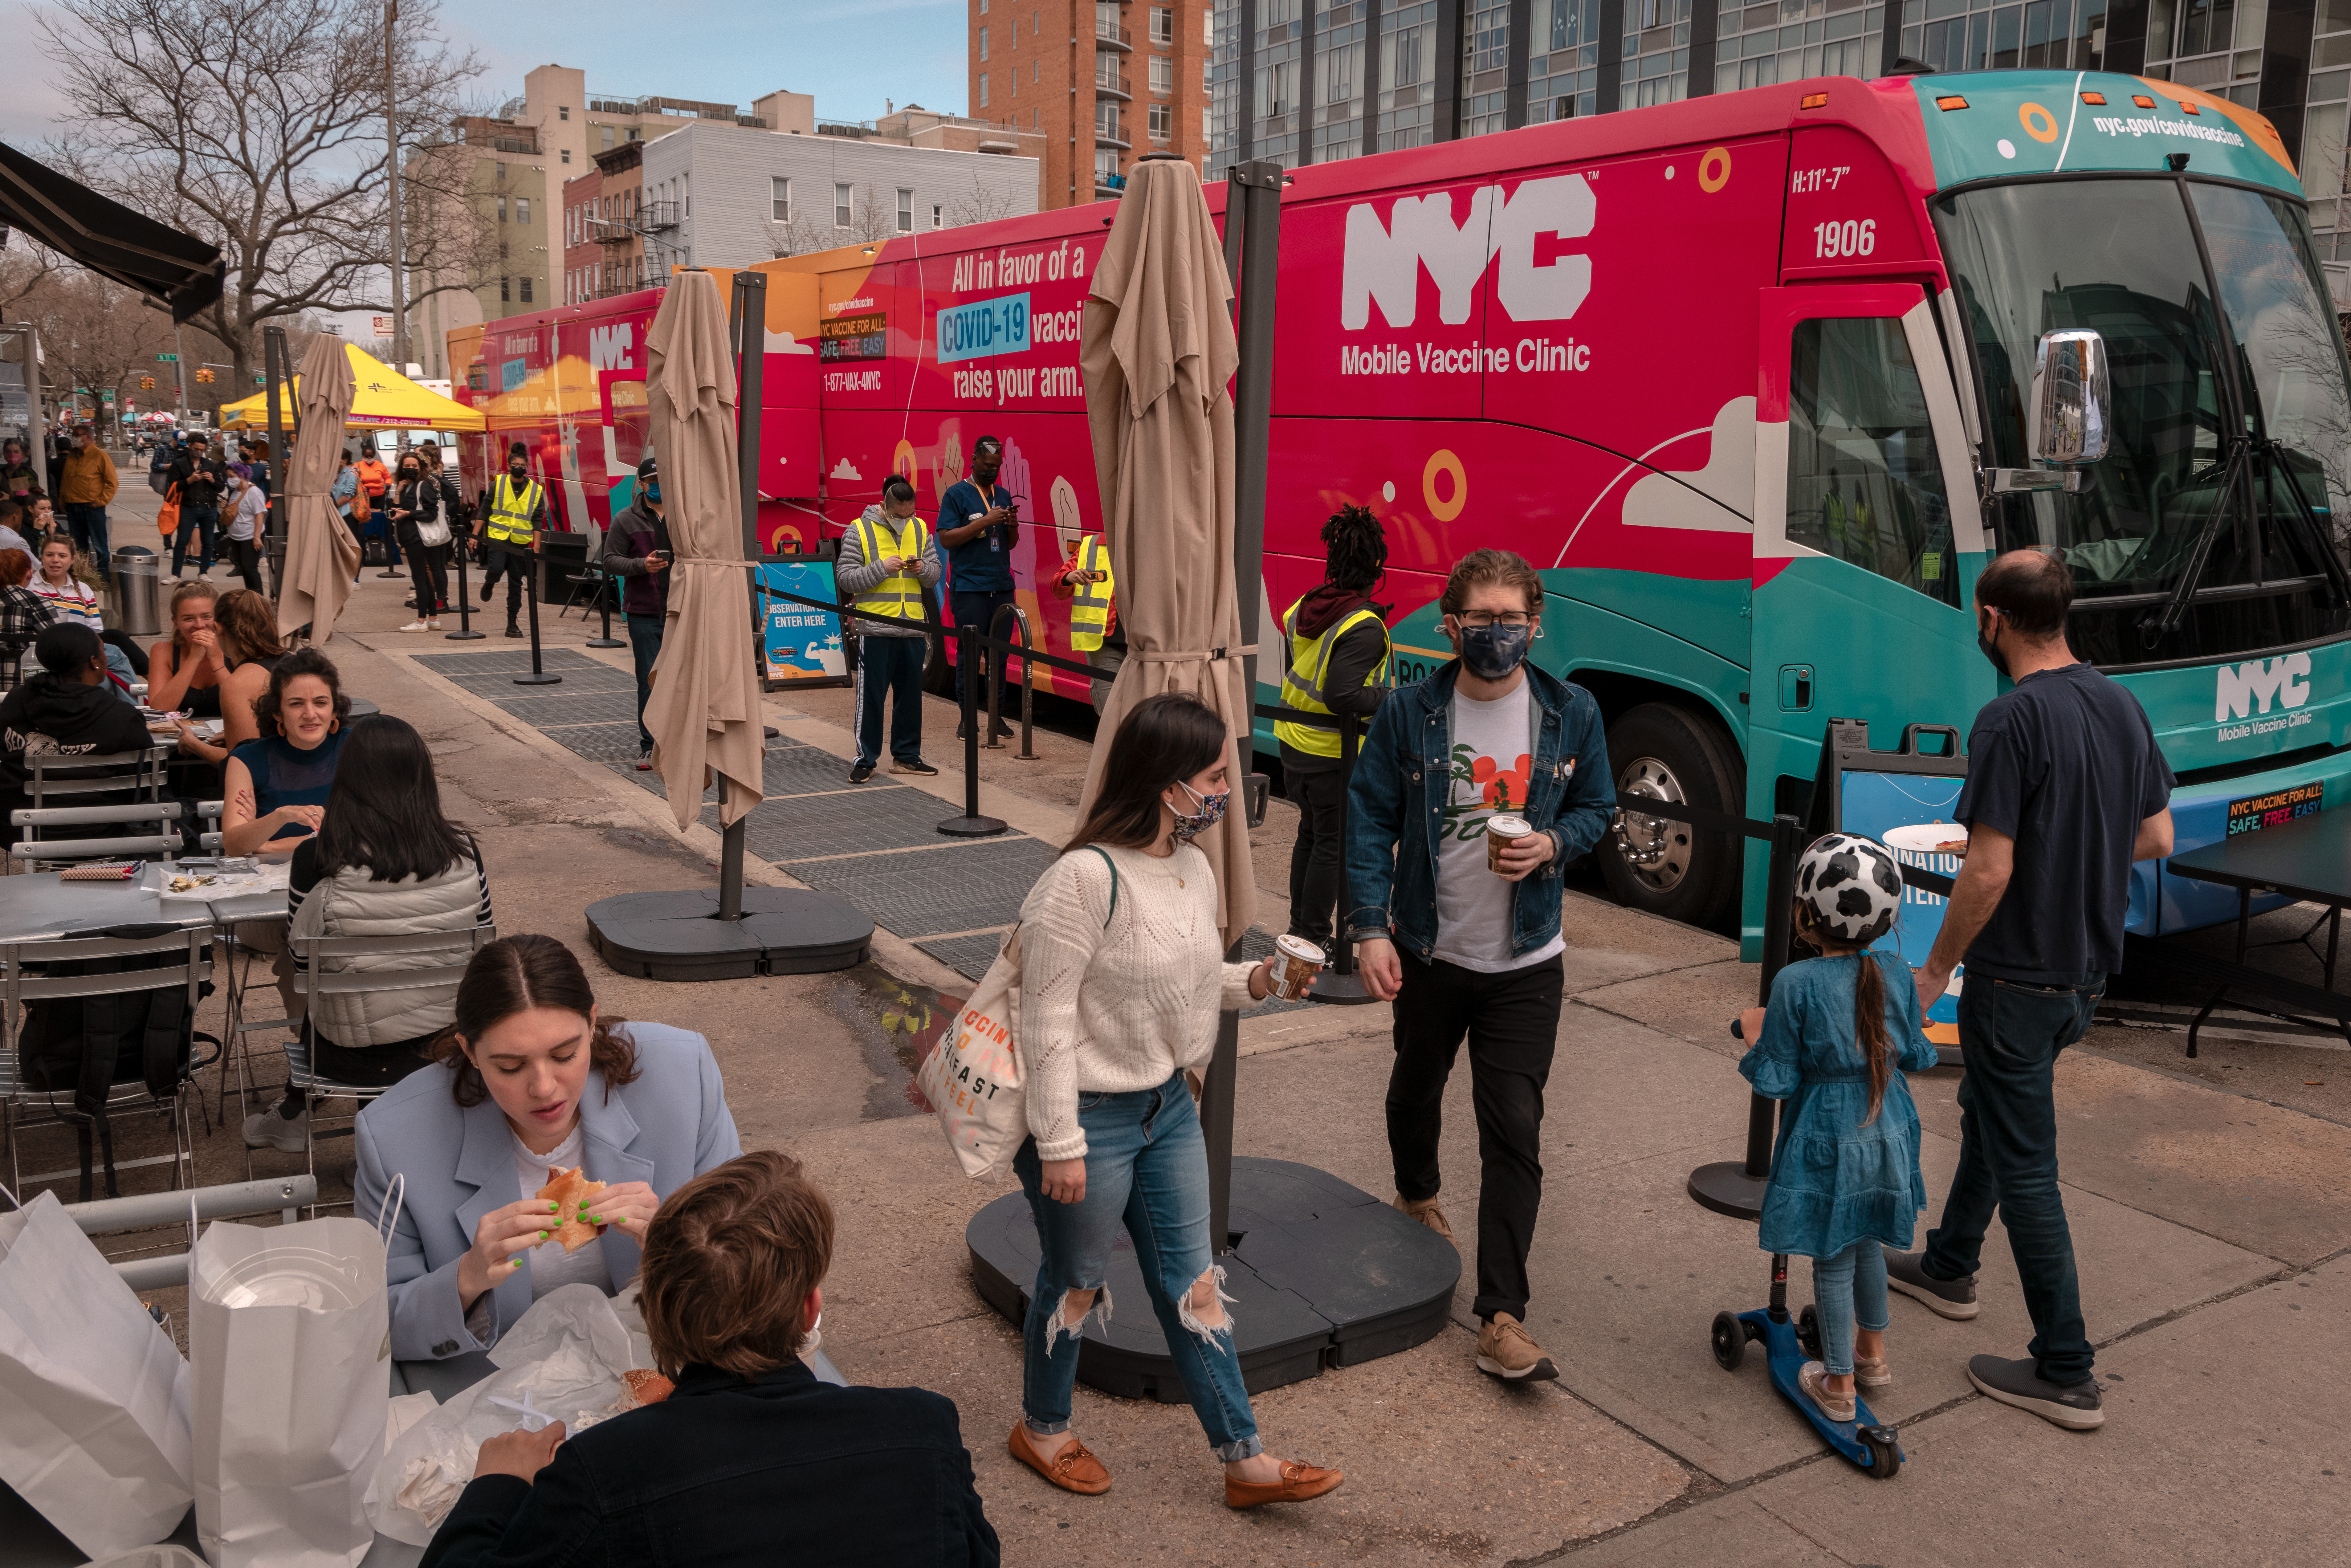 The mobile vaccination clinic outside of Lilia in Williamsburg, Brooklyn